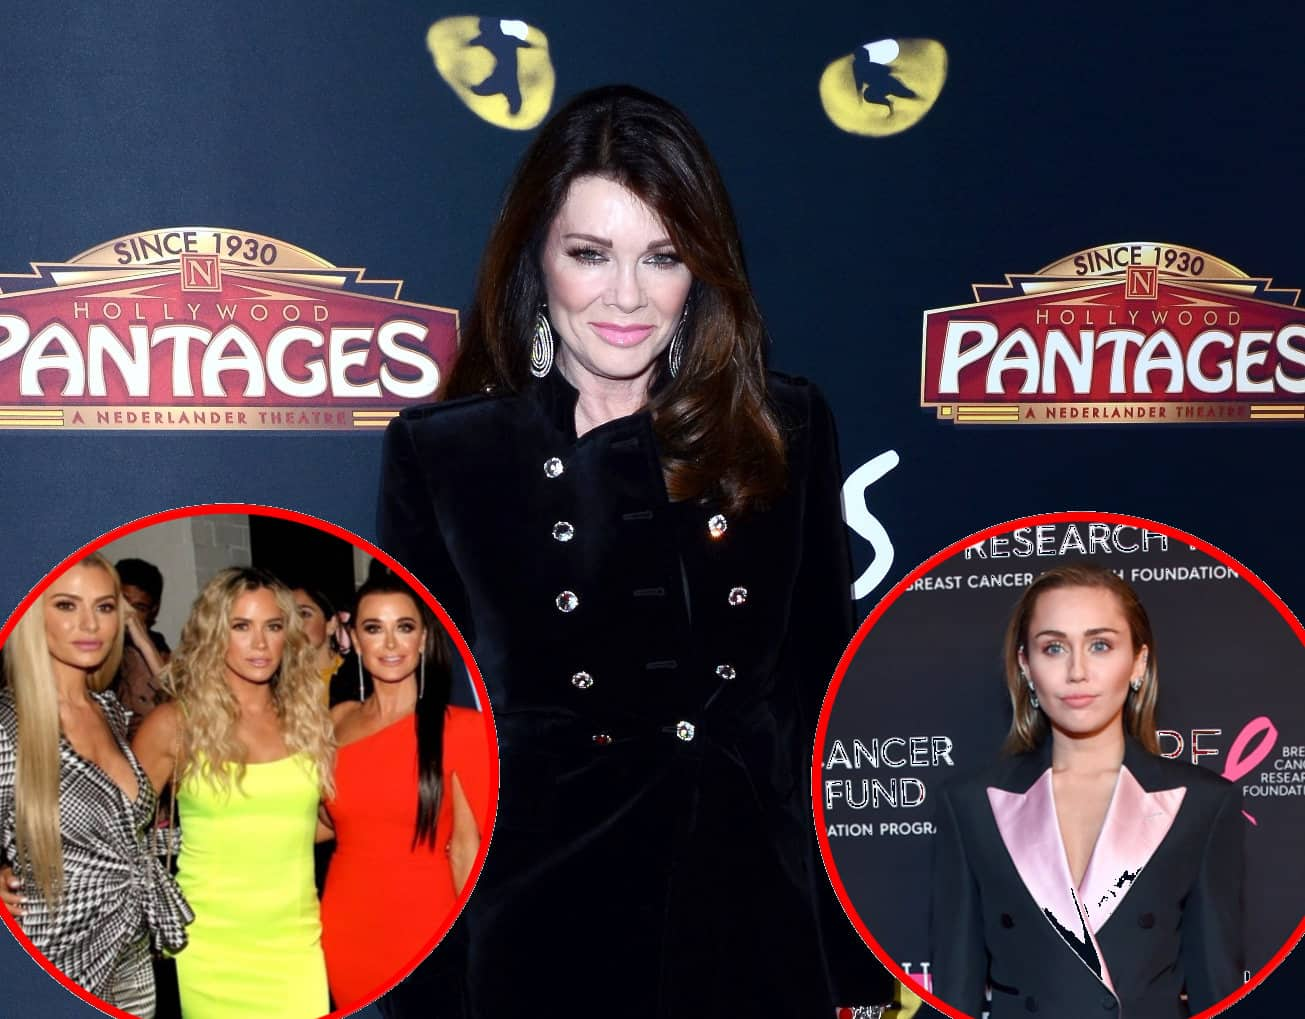 Lisa Vanderpump Throws Shade at RHOBH Cast over Selling Story Accusation! Plus Lisa Hangs Out with Miley Cyrus at TomTom Bar